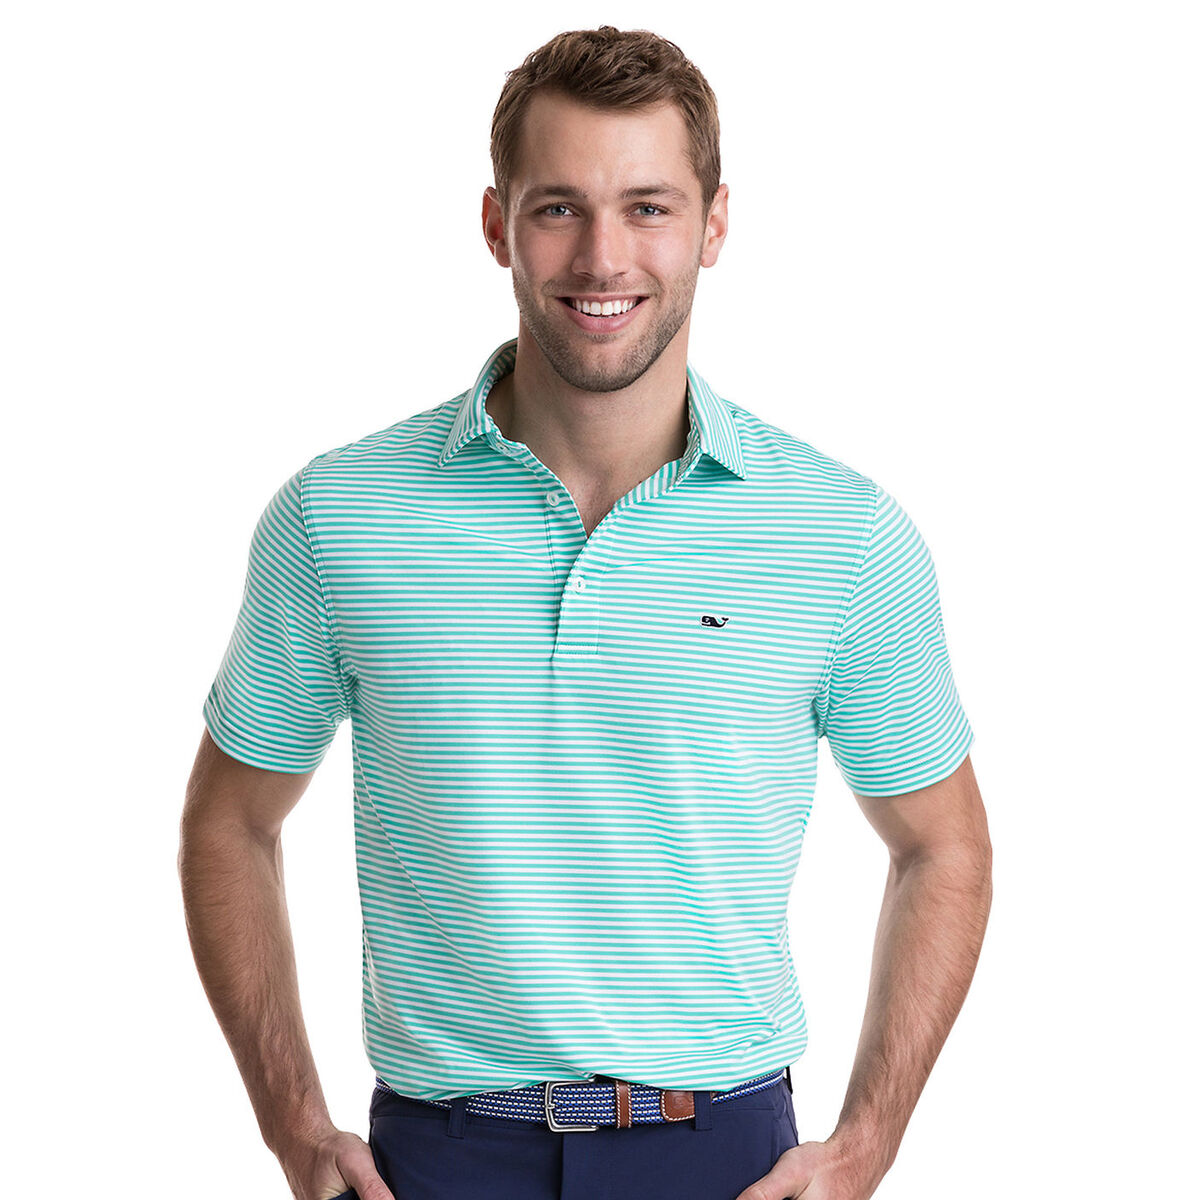 Images. Vineyard Vines Winstead Stripe Sankaty Performance Polo 8dc9e0b22672